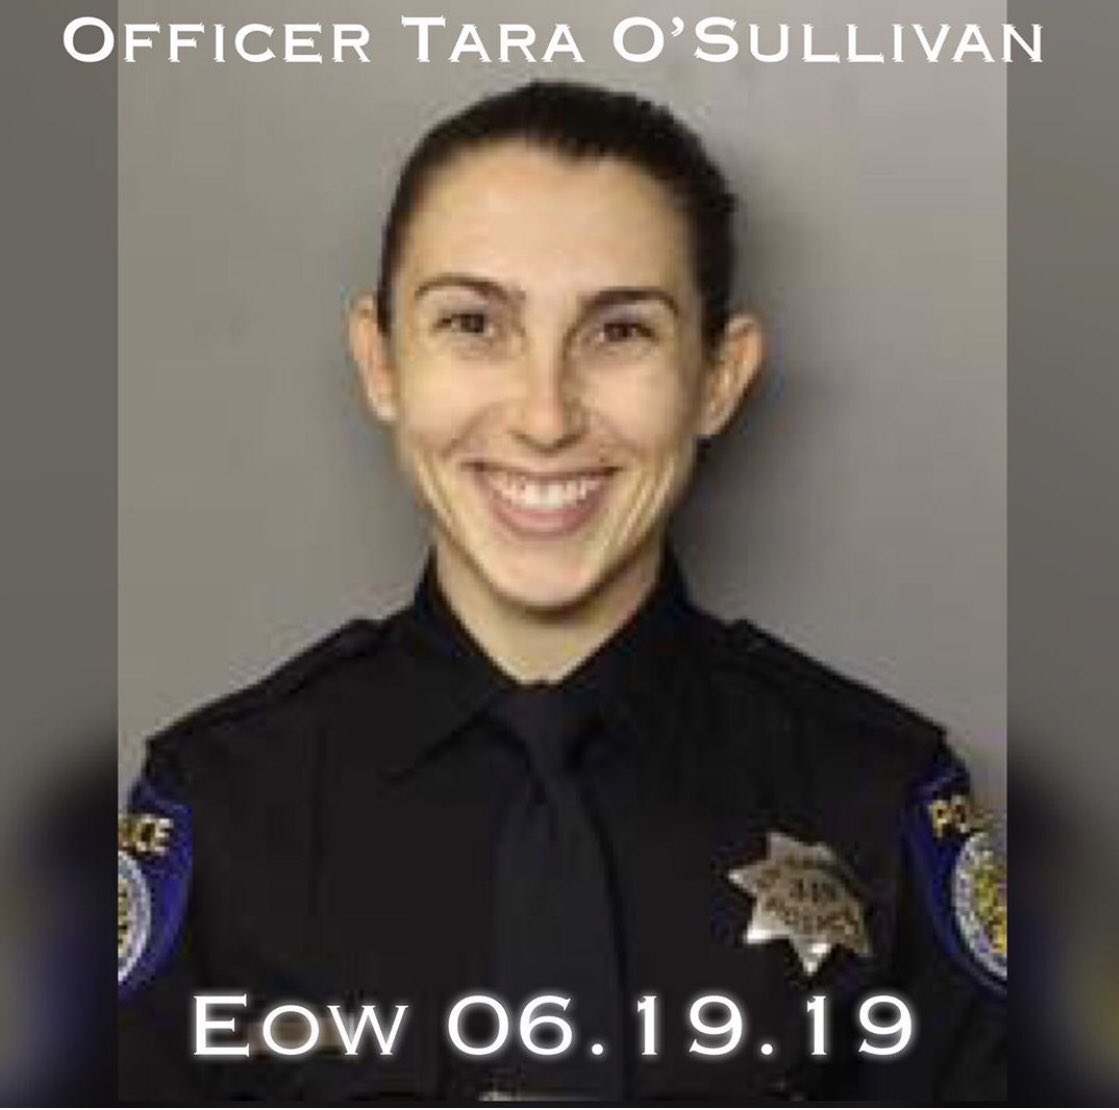 @TomiLahren's photo on Officer O'Sullivan